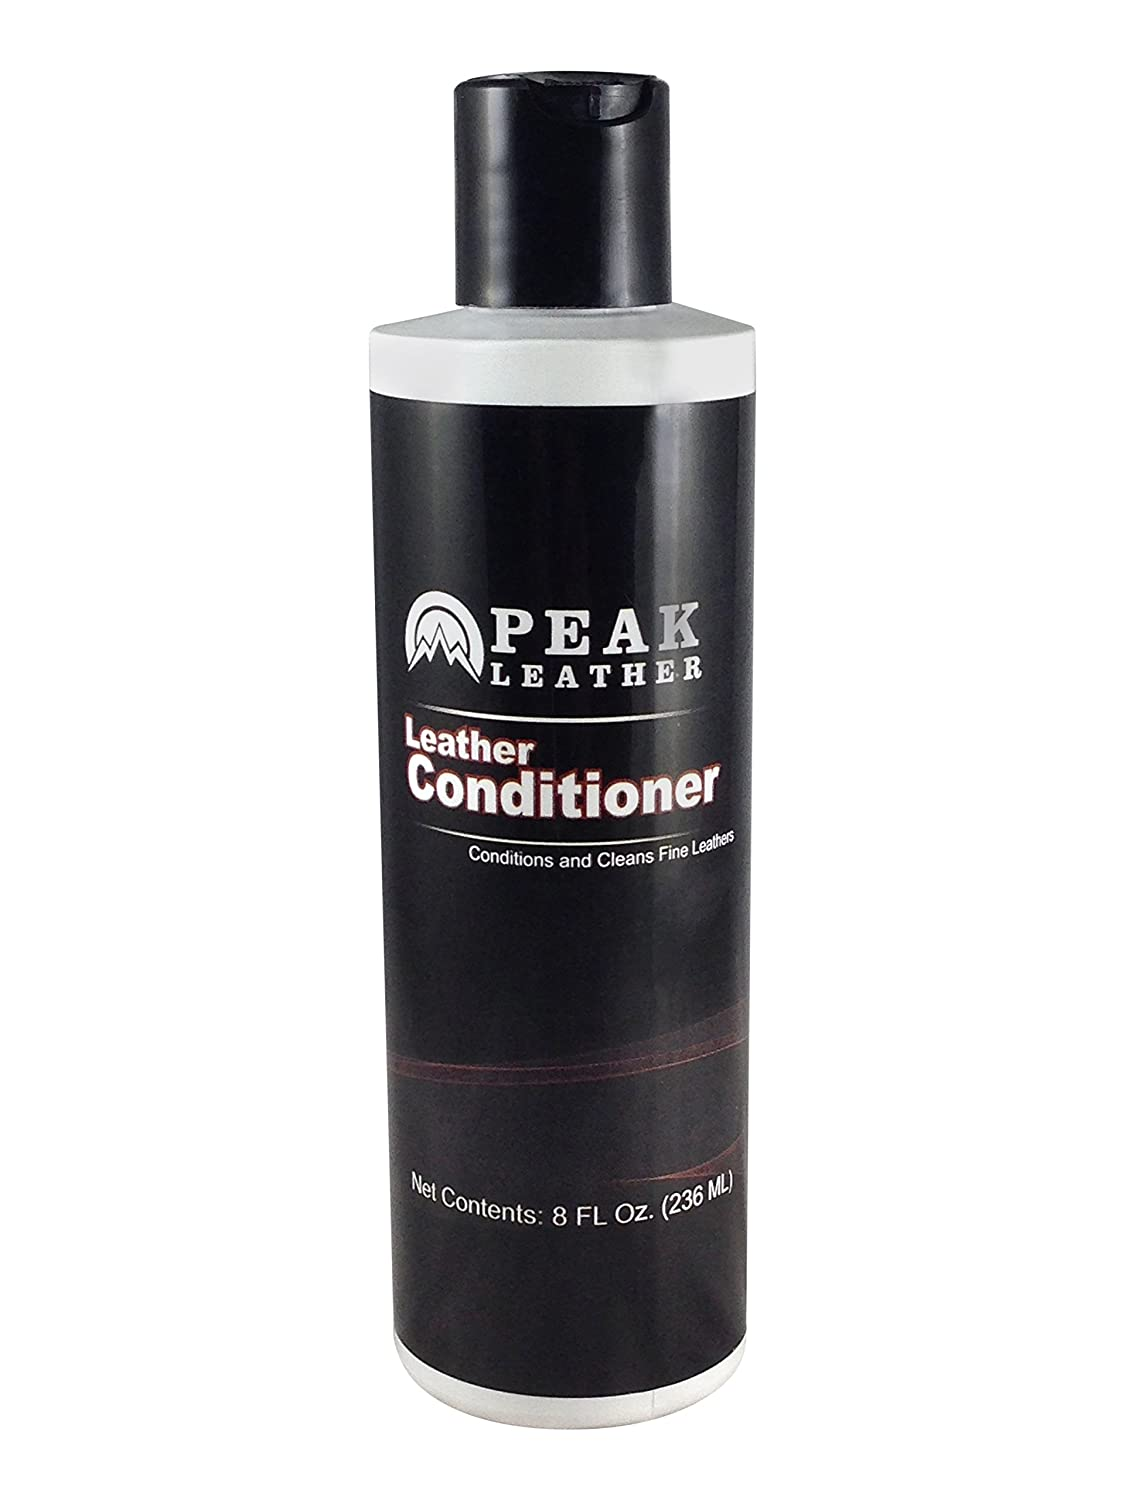 Top 10 Best Leather Conditioners for Cars Reviews in 2020 3